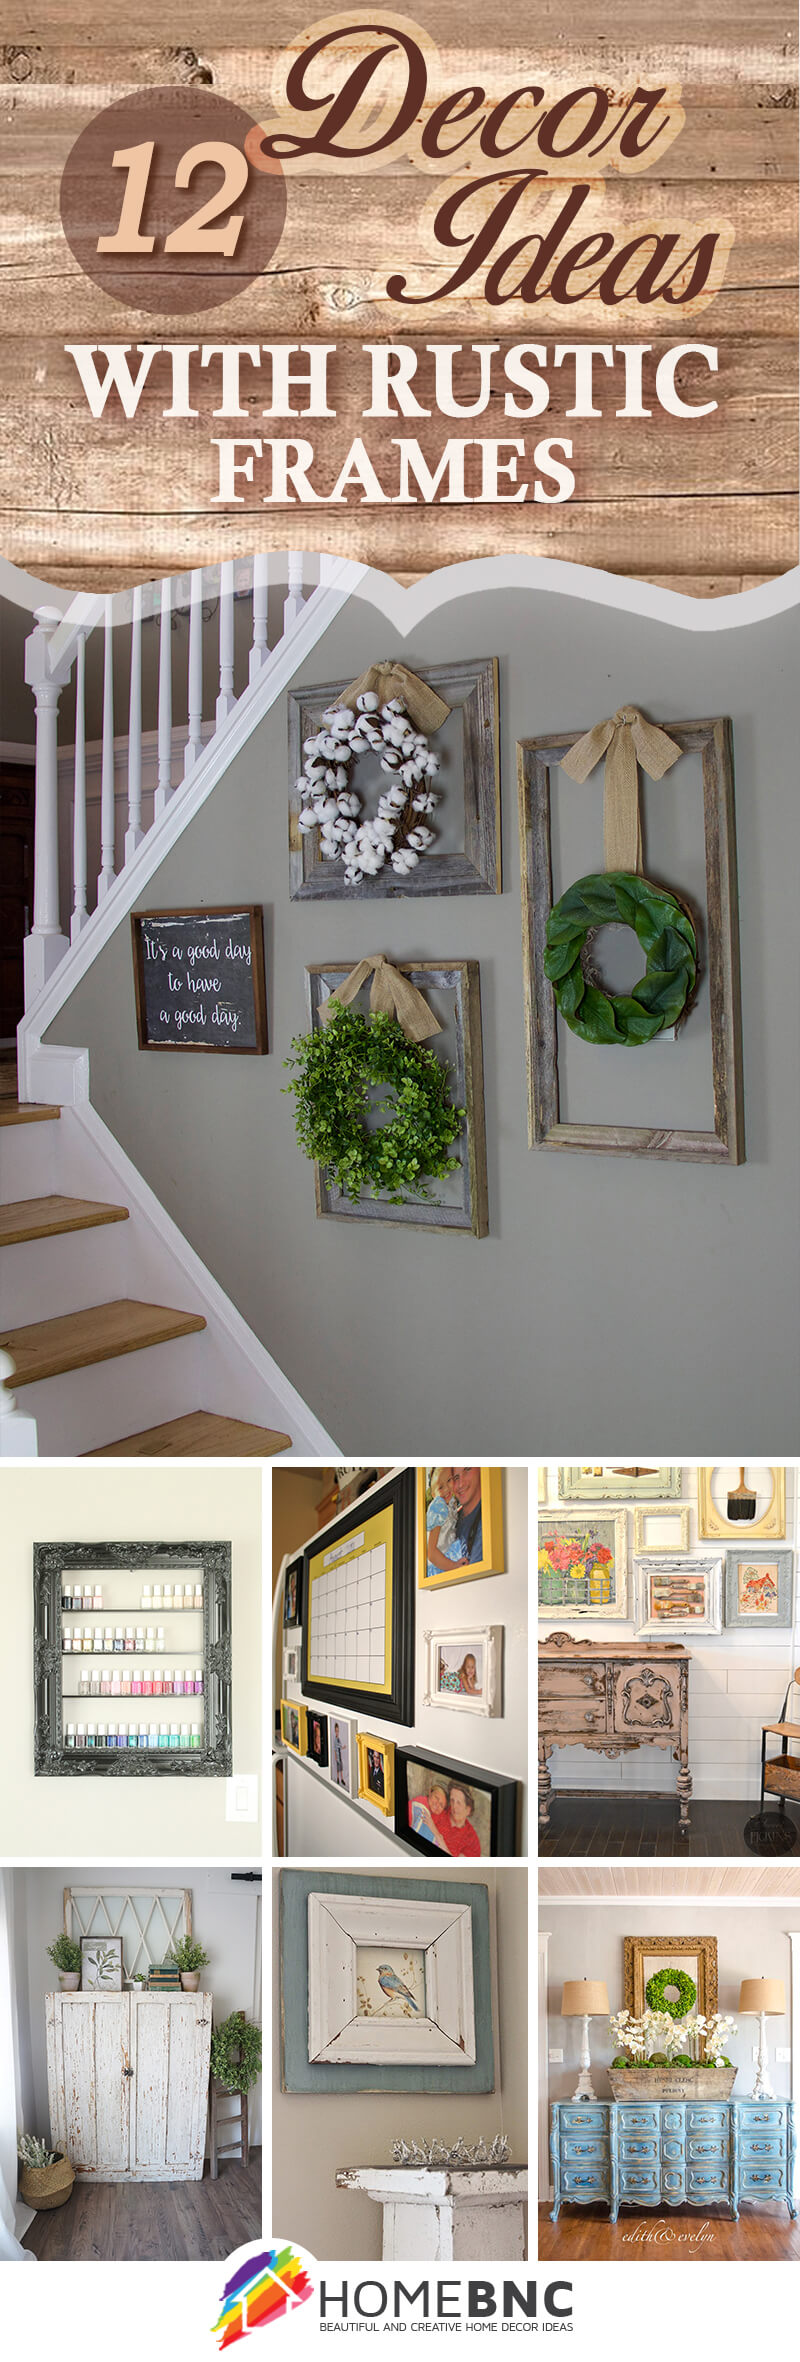 Https Homebnc Com Best Rustic Farmhouse Interior Design Ideas Farmhouseinterior: 12 Best Decorating Ideas With Rustic Frames For 2019